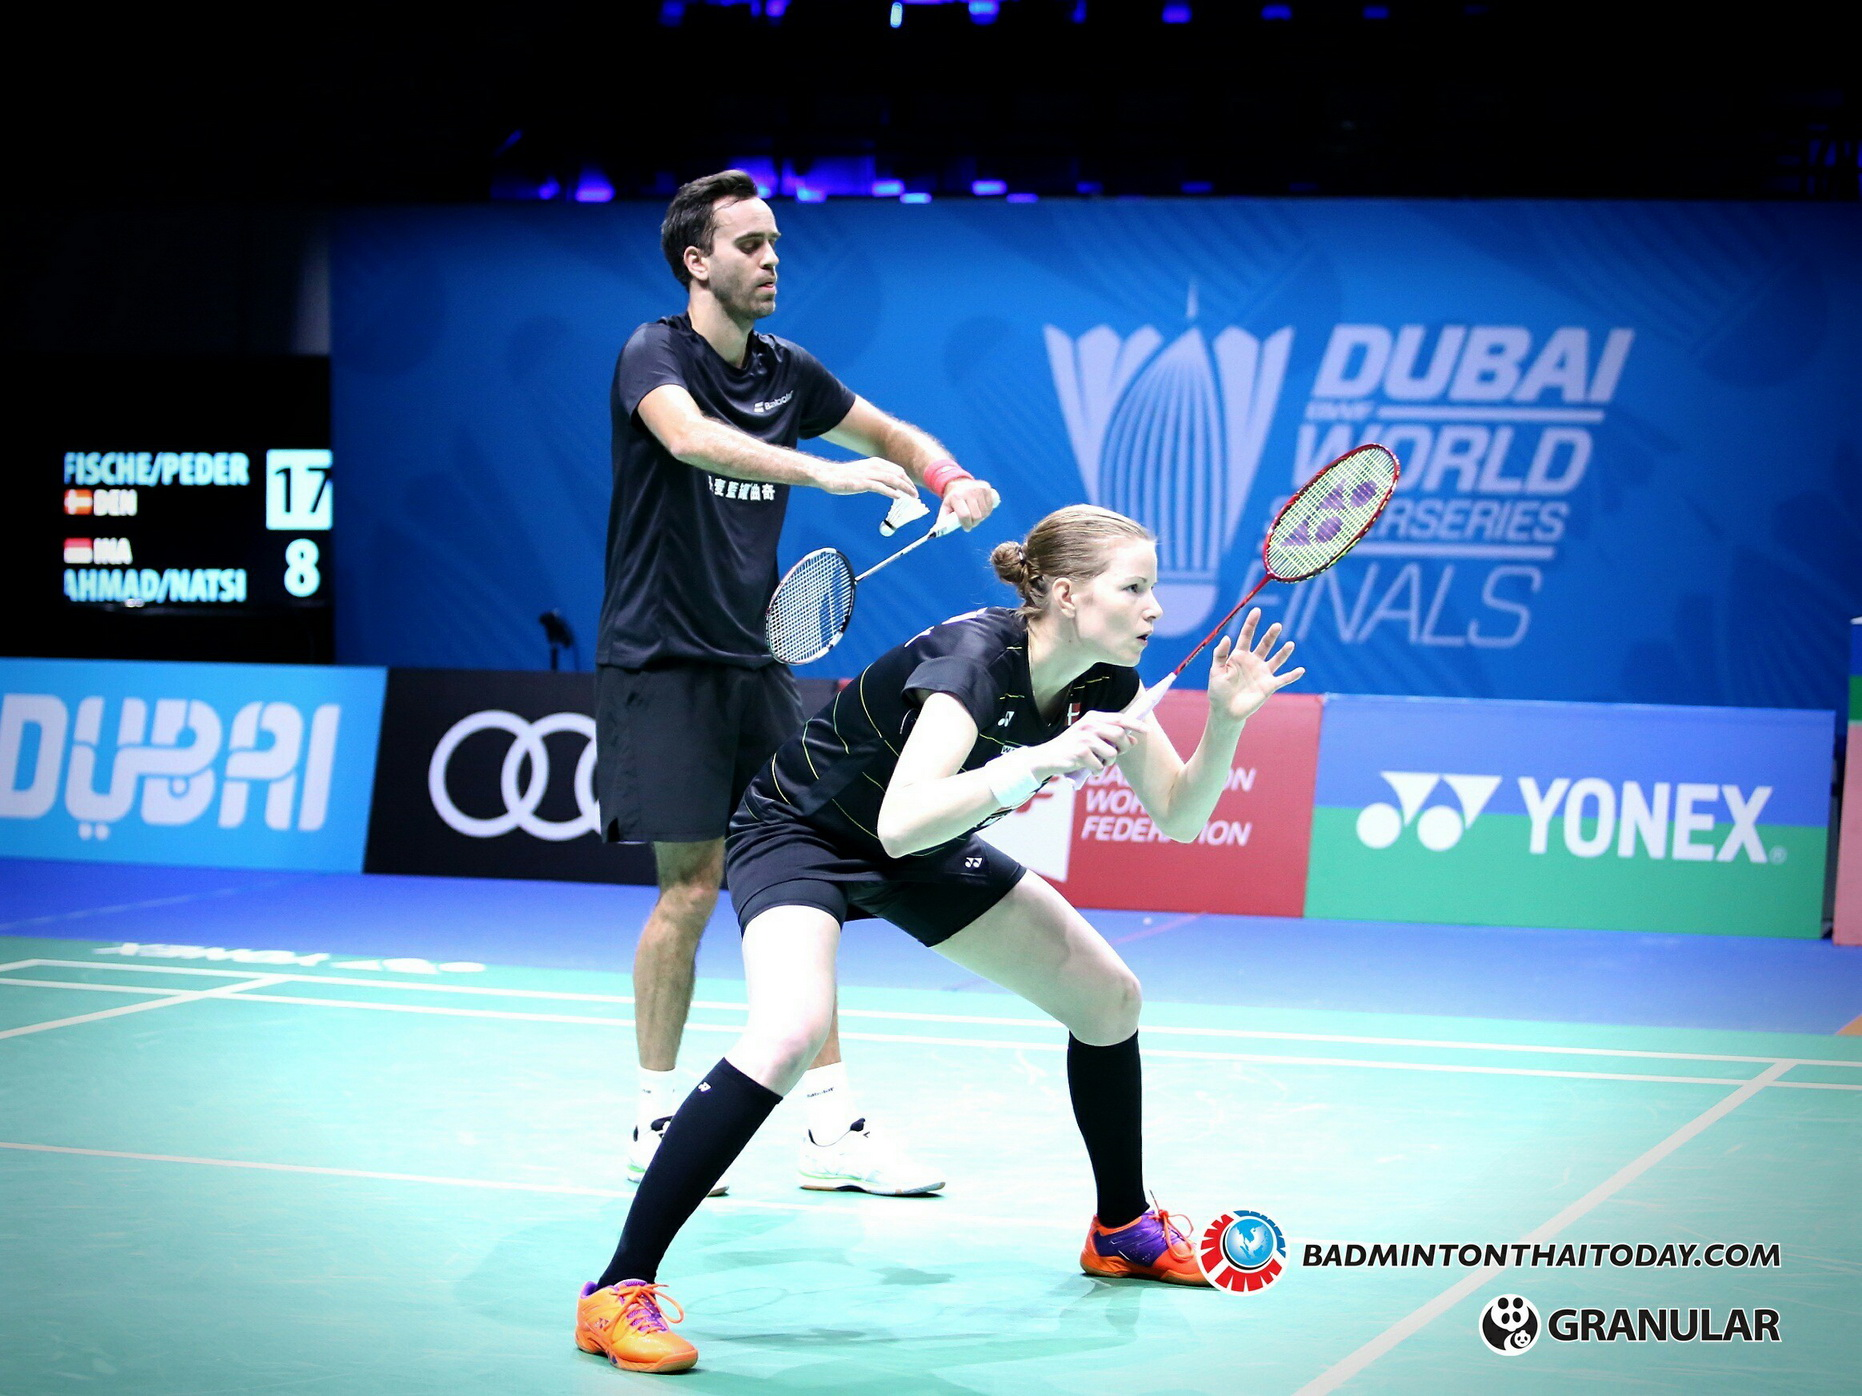 Joachim Fischer Nielsen - Christinna Pedersen@ Dubai World Superseries Final 2016 รูปภาพกีฬาแบดมินตัน